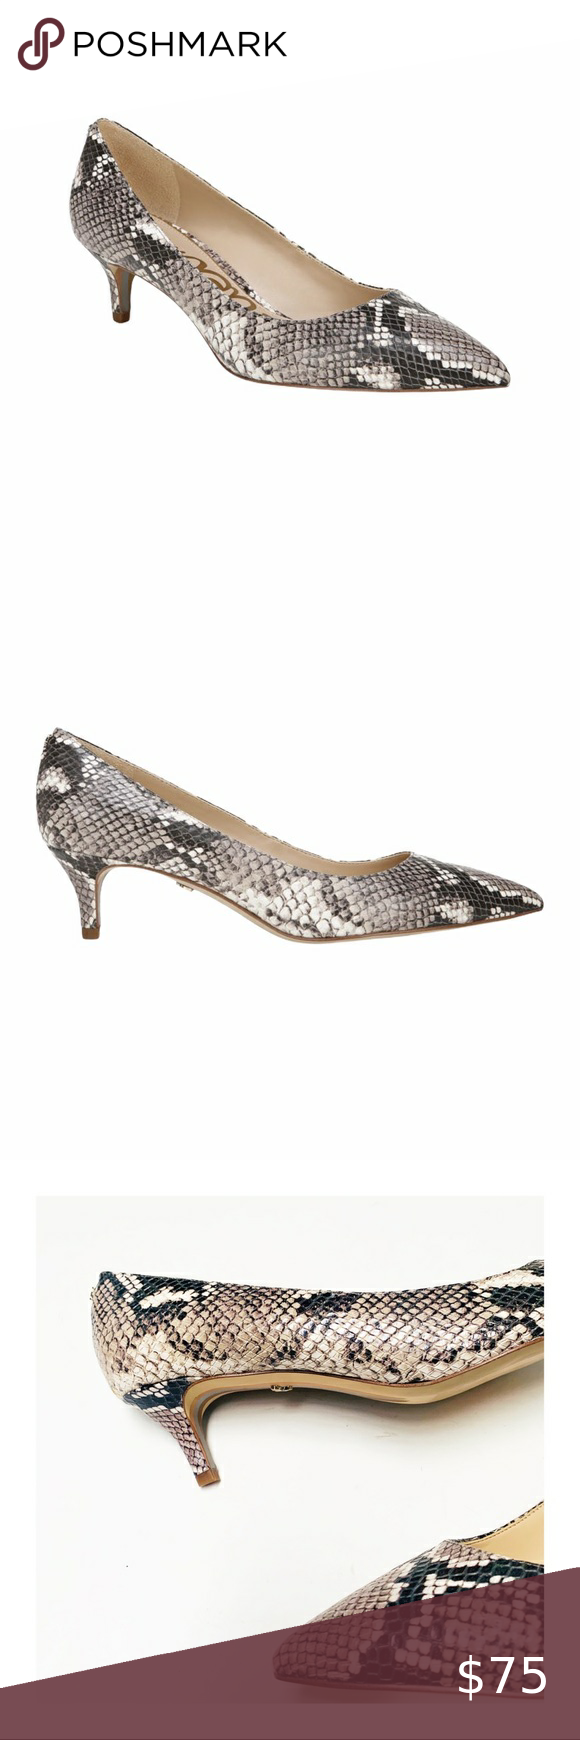 Sam Edelman Dori Snakeskin Leather Kitten Heel In 2020 Snakeskin Leather Kitten Heels Kitten Heel Pumps